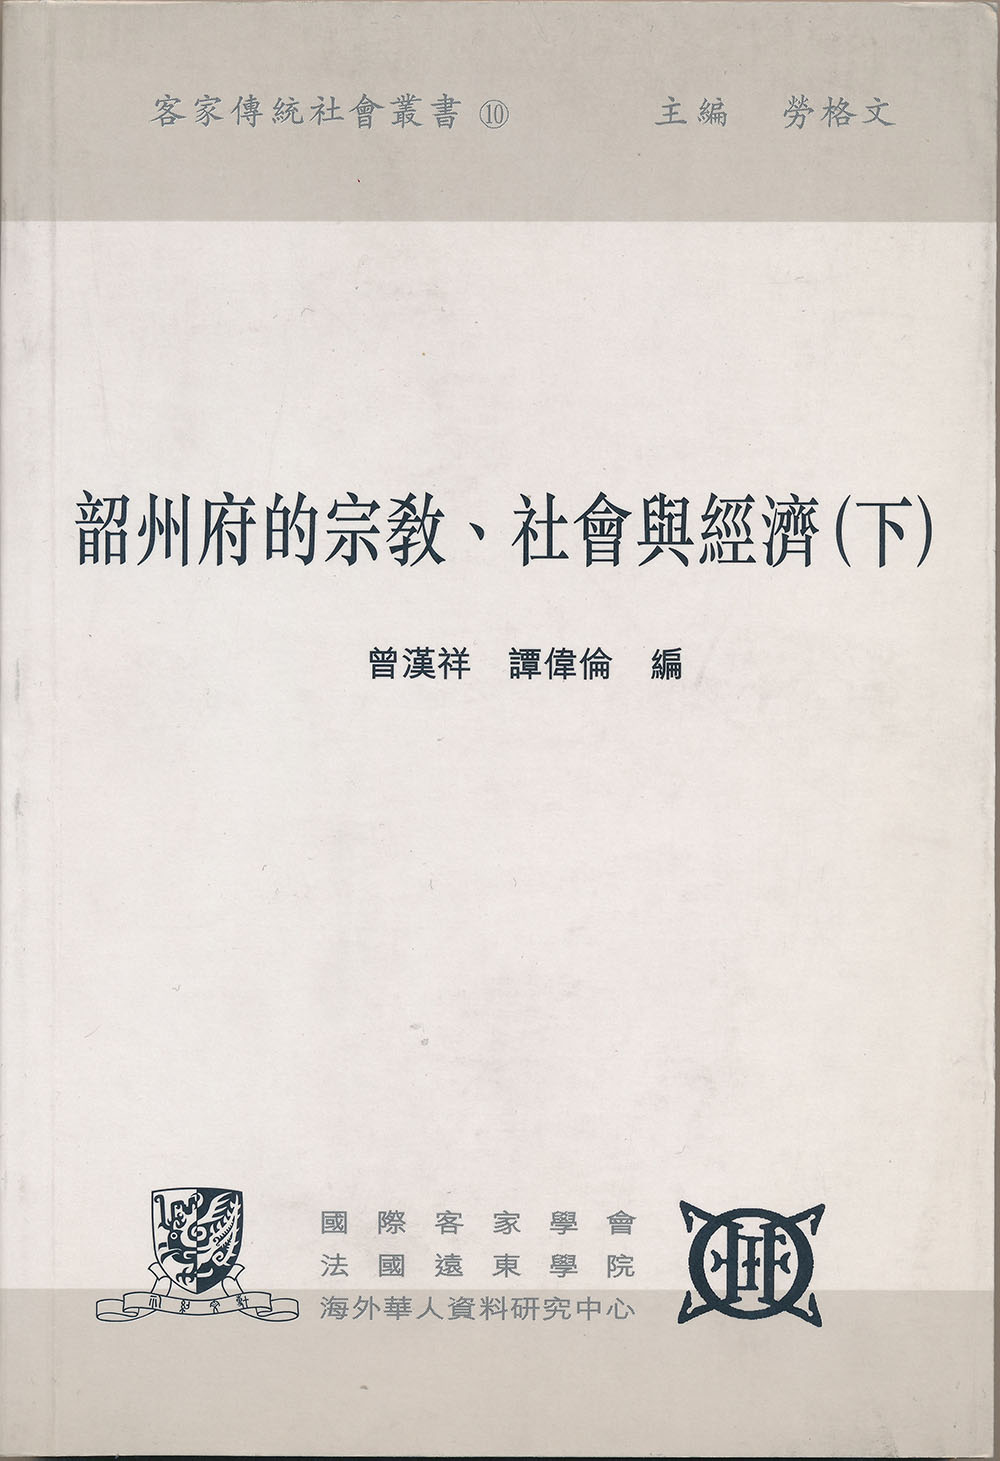 Shaozhou fu de zongjiao, shehui yu jingji = Religion, society, and the economy in Shaozhou volume 2